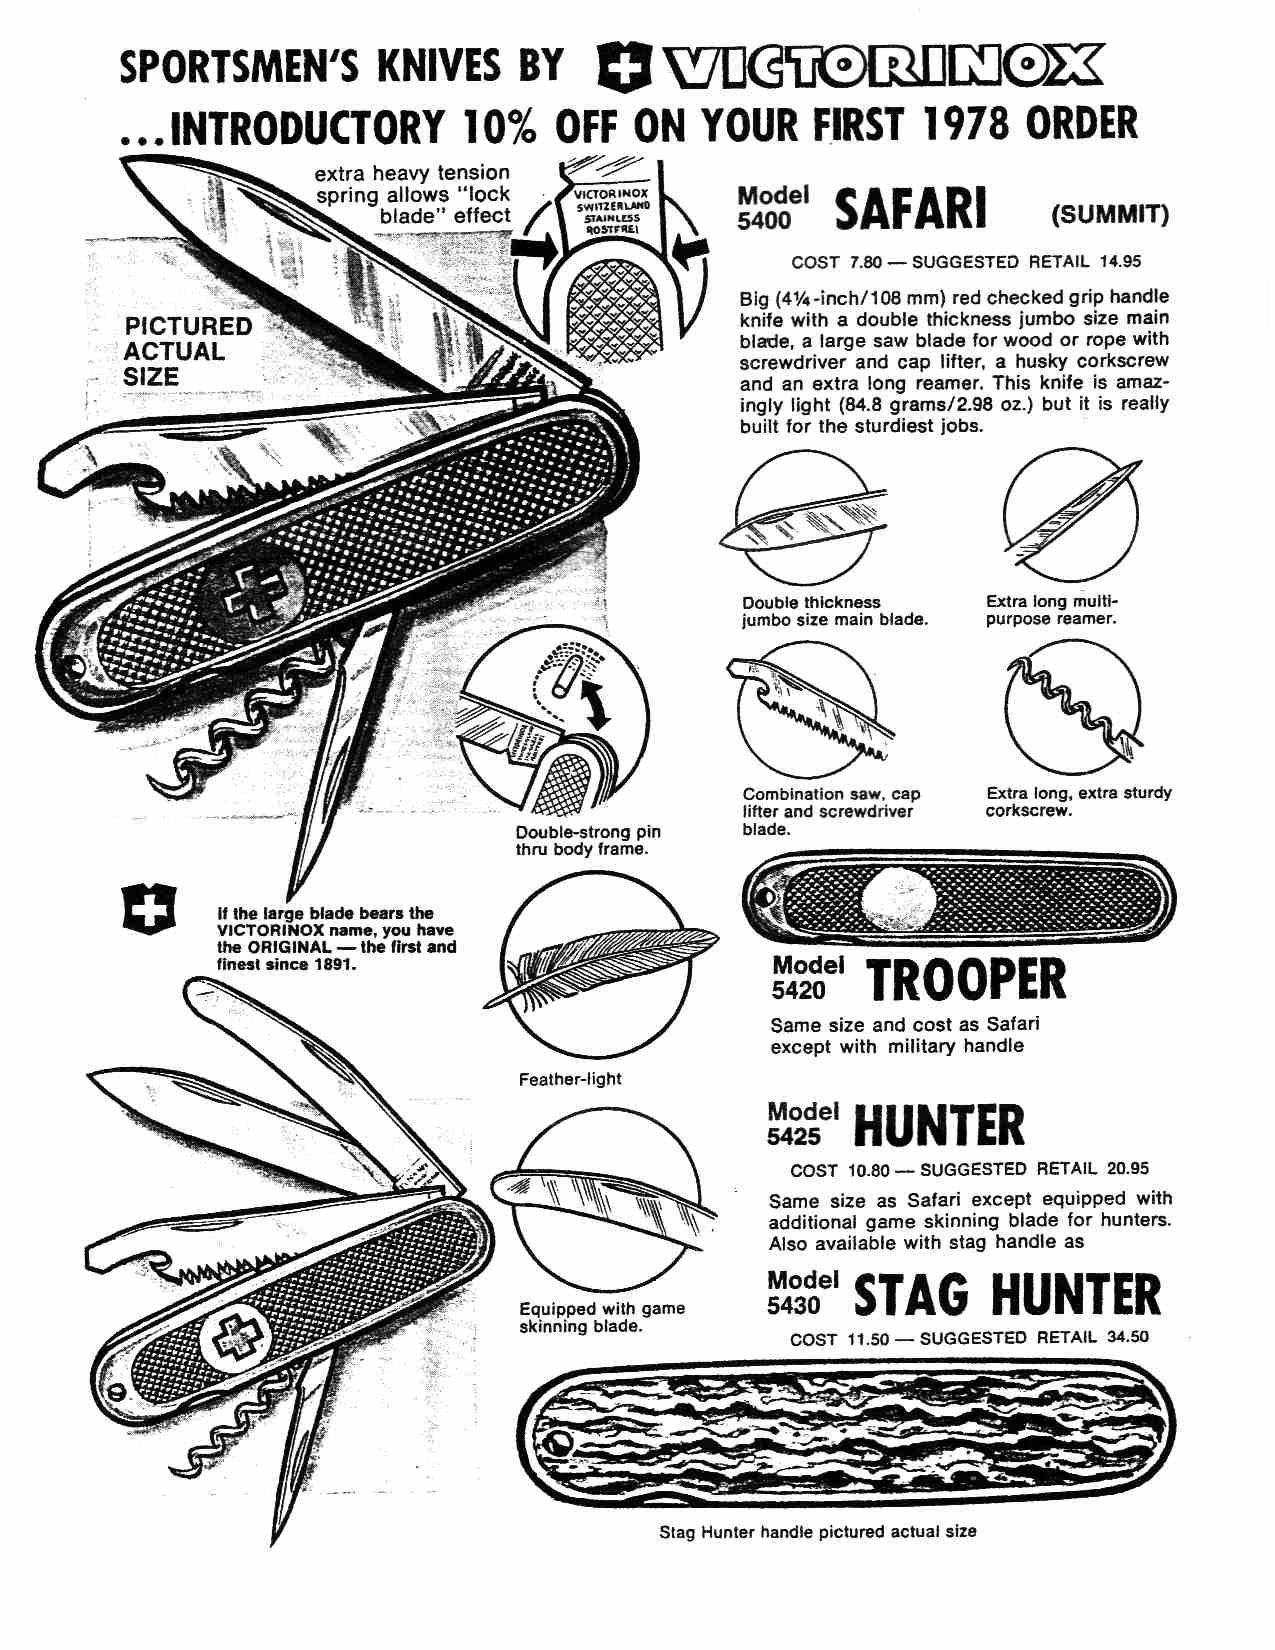 1978 safari trooper poster, also showing the stag handled model